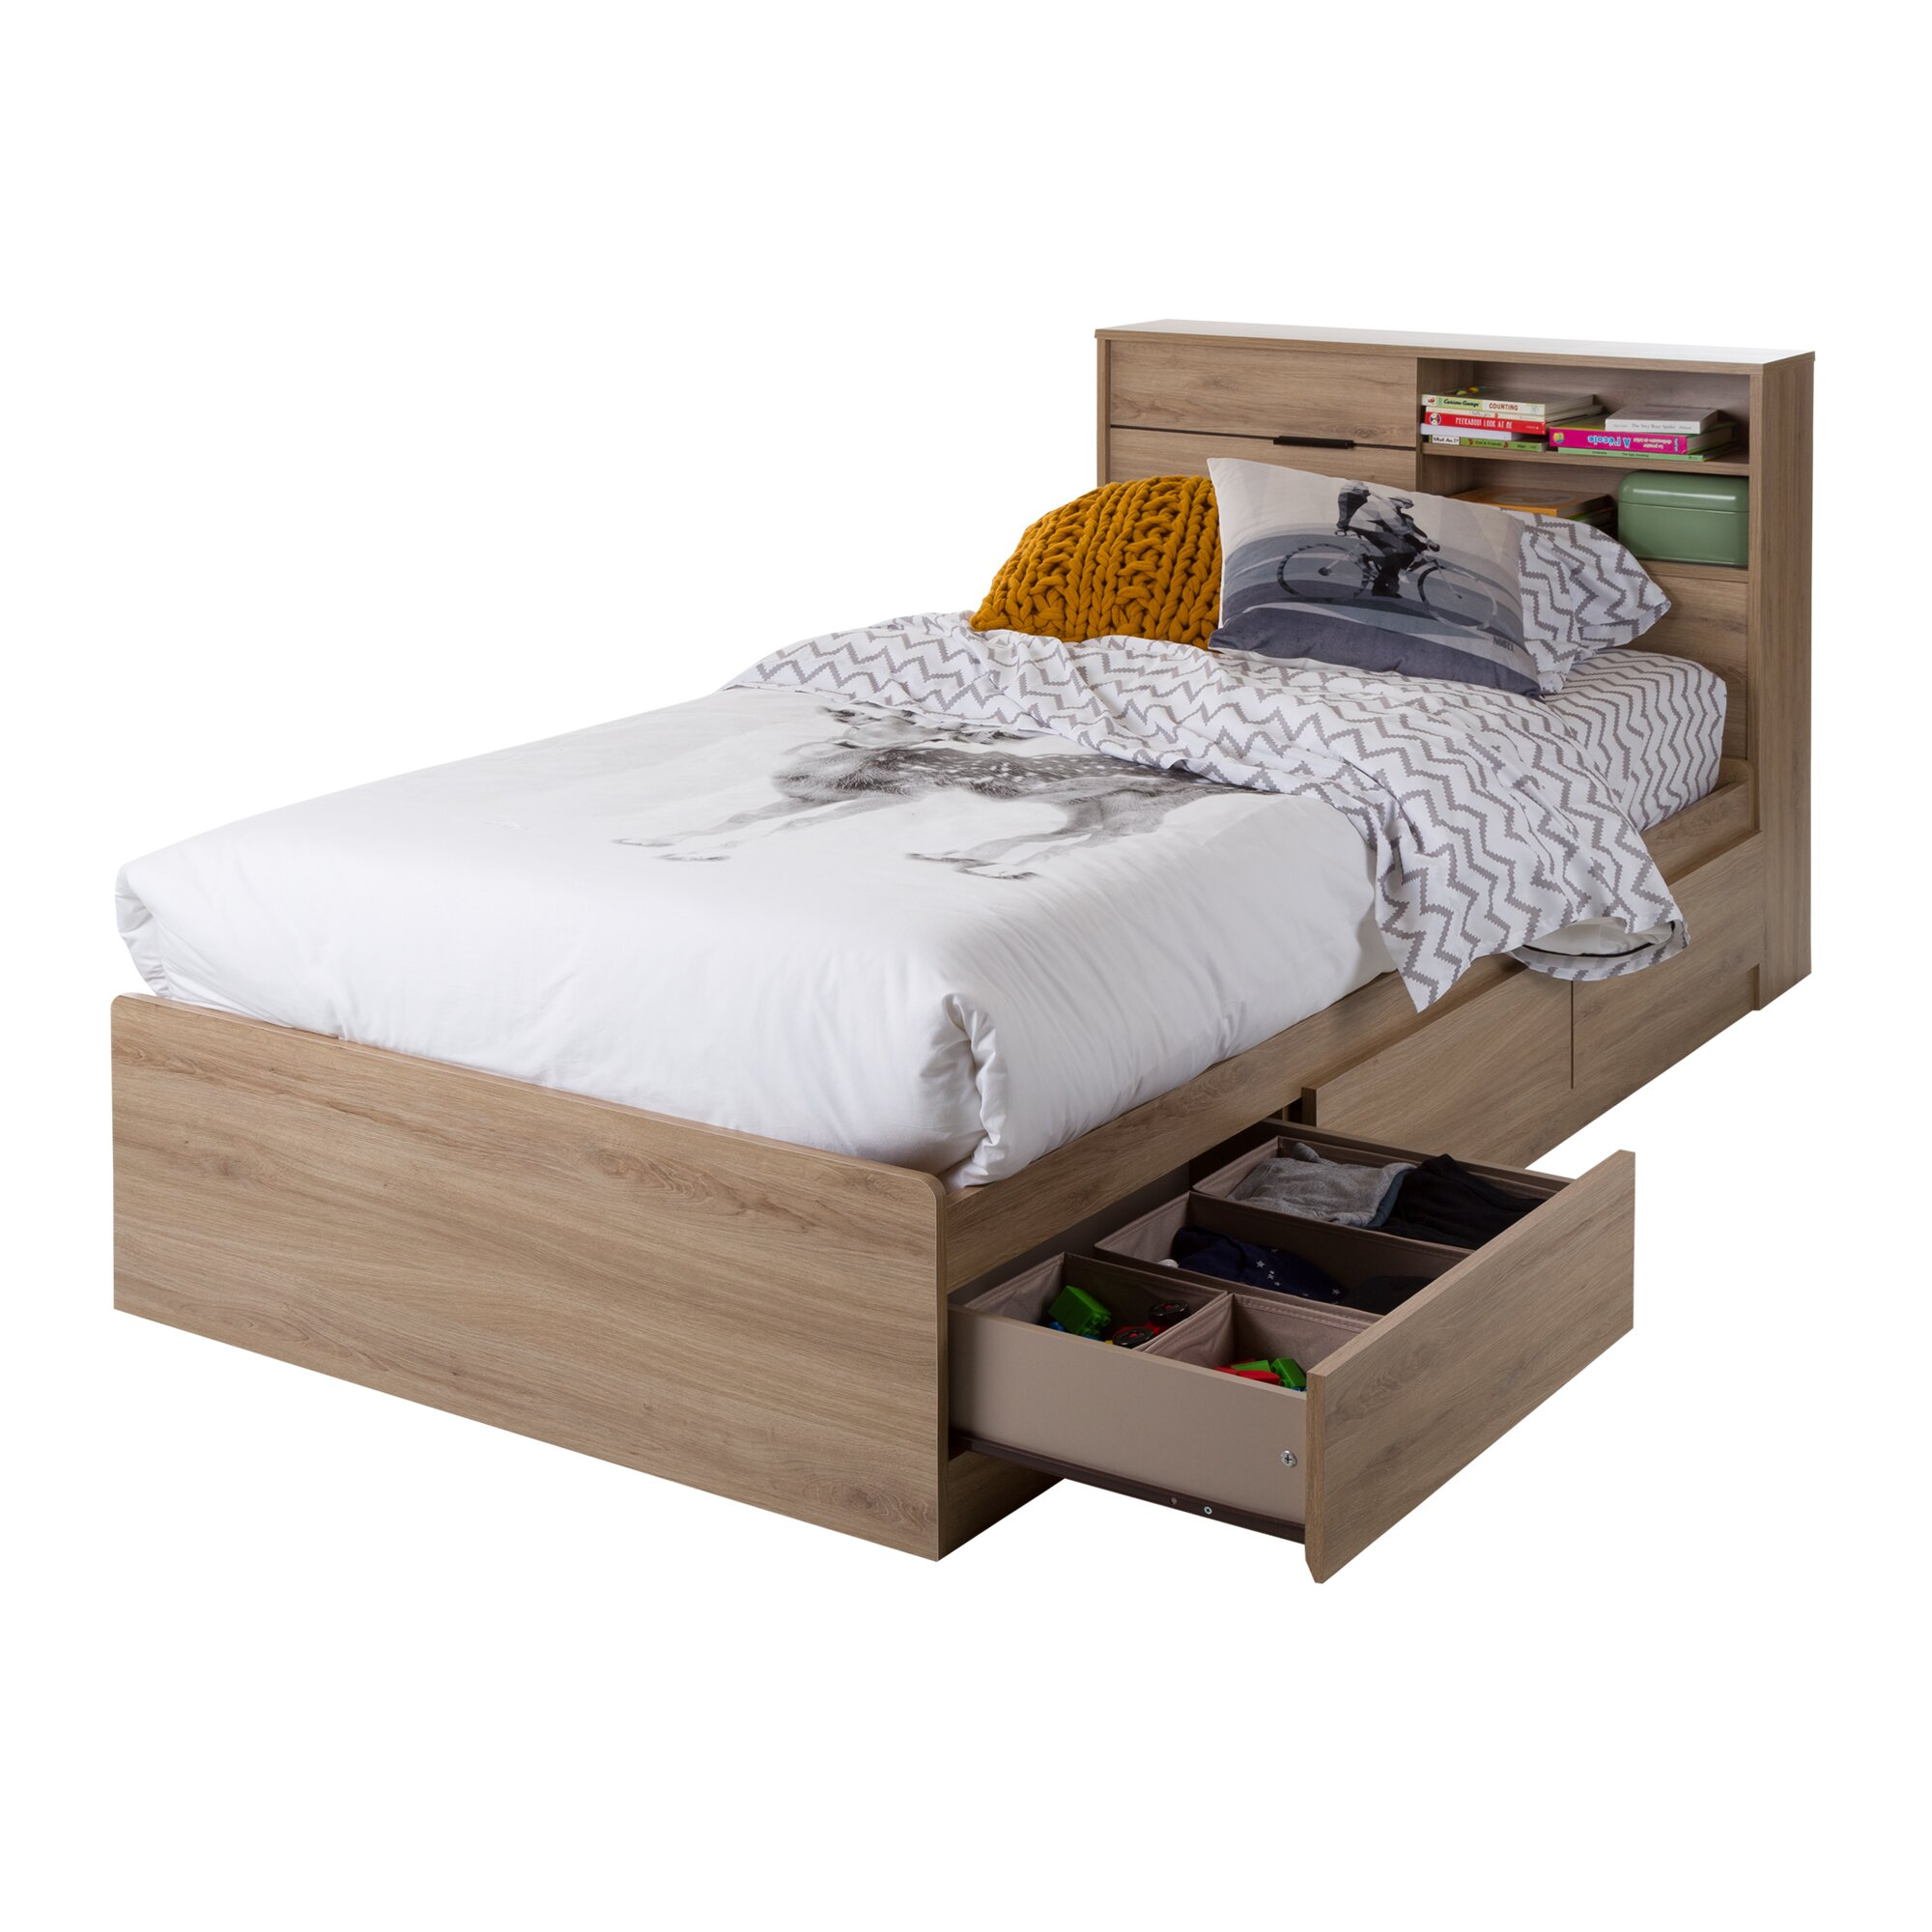 South Shore Fynn Twin Mate's Bed With Storage & Reviews. Contemporary Conference Tables. Round Antique Dining Table. Auto Desk 360. Tech Help Desk. Ikea Malm Desk Instructions. Train Table Ikea. King Bed Frame With Storage Drawers. Coffee Table Dining Table Combo